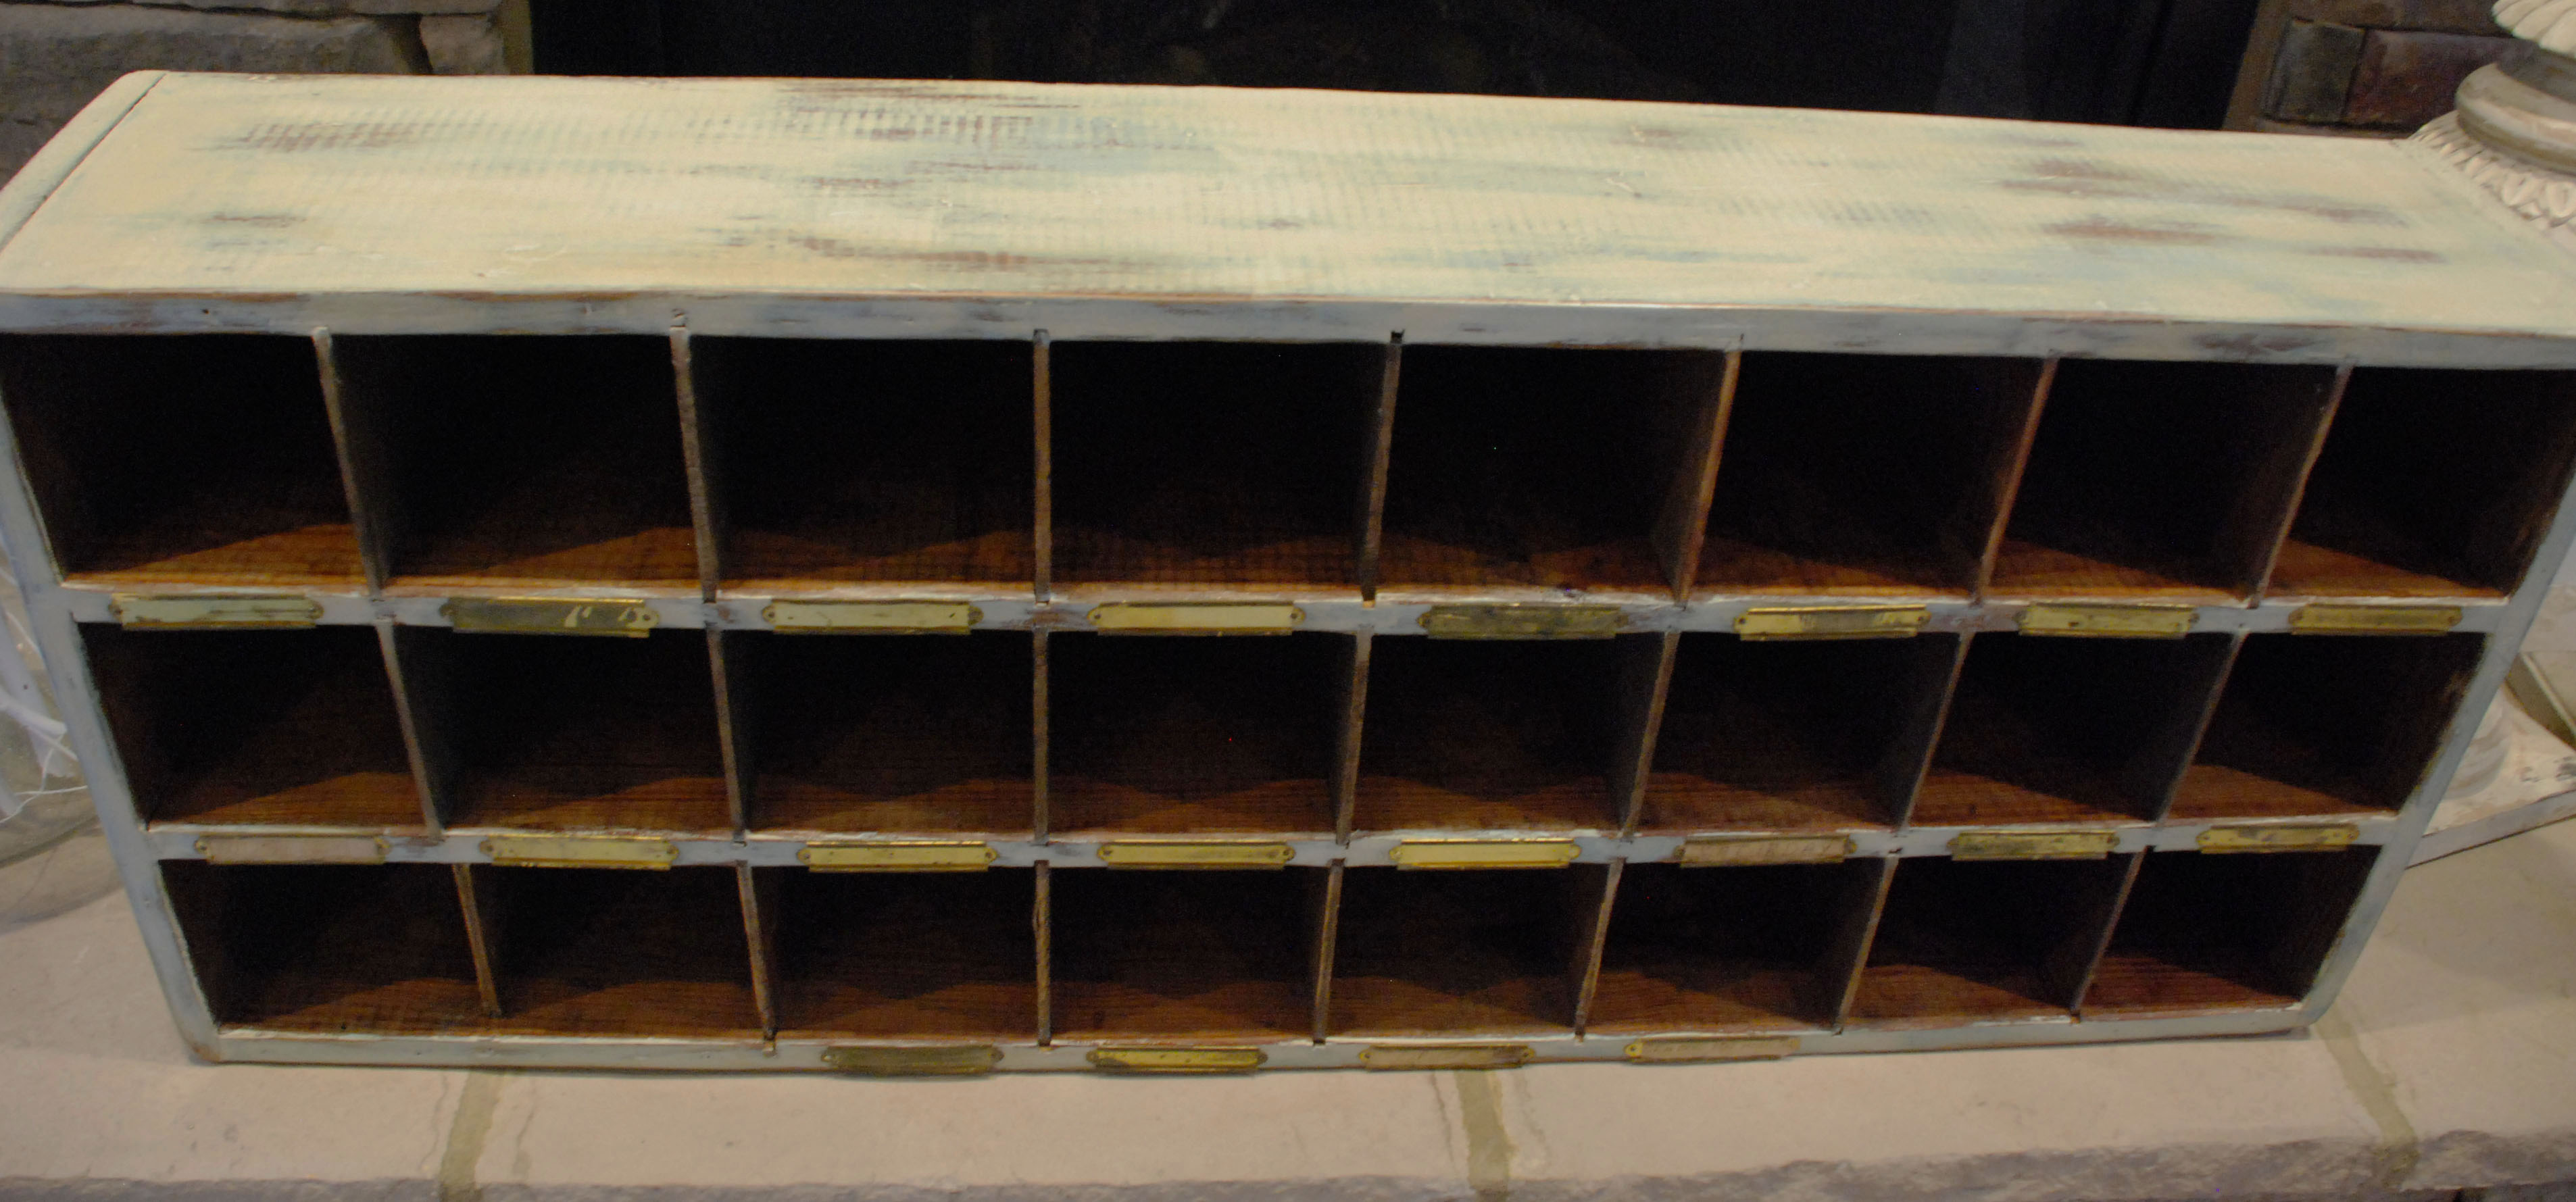 woodworking plans mail sorter